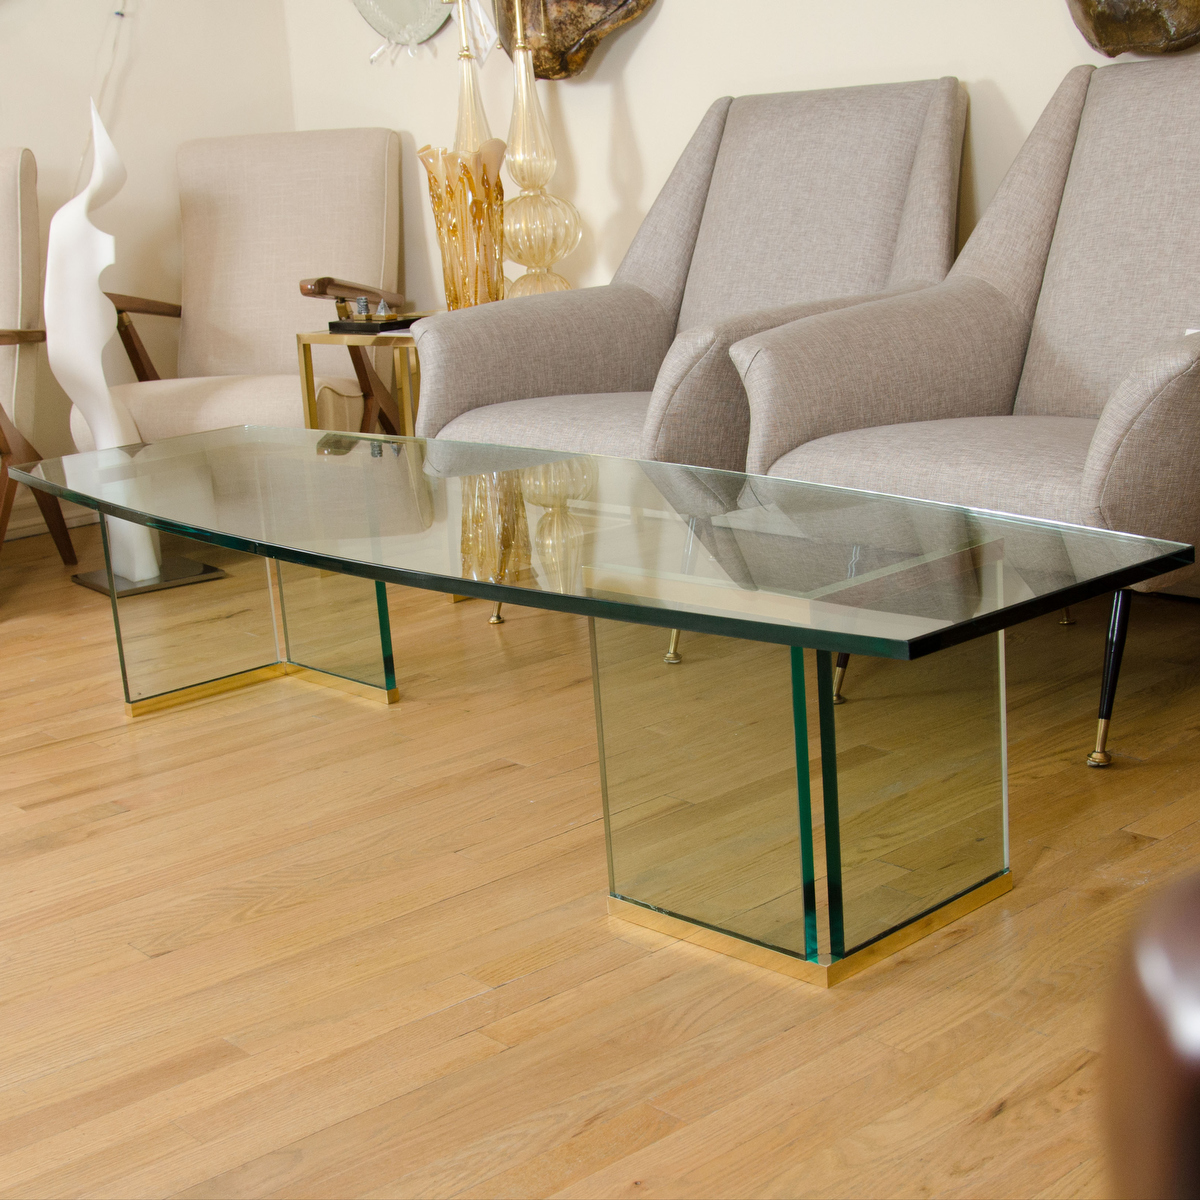 Marvelous Elliptical Coffee Table Images Inspirations Dievoon